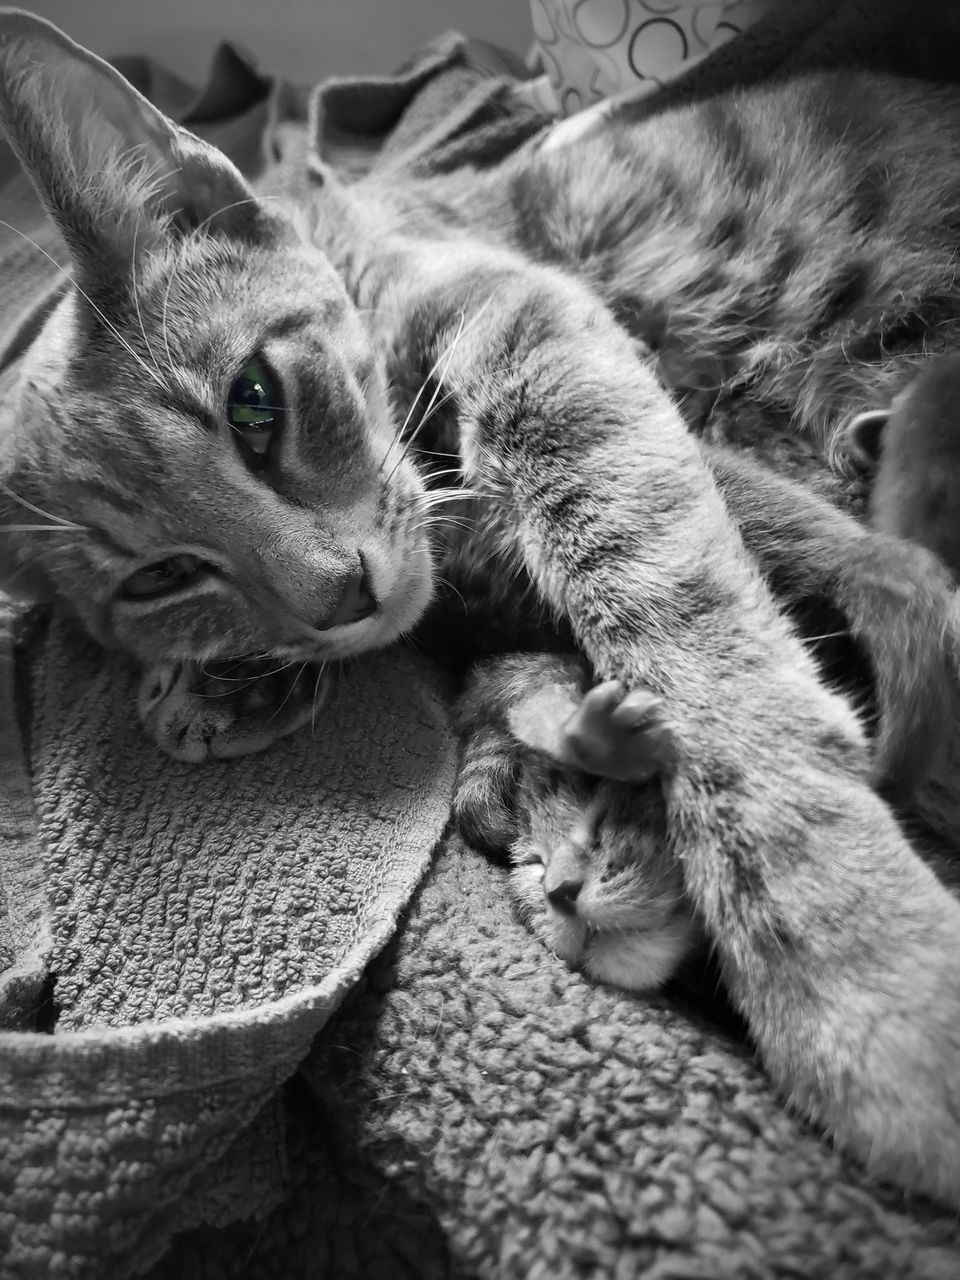 pets, mammal, cat, domestic, domestic animals, domestic cat, feline, one animal, animal, animal themes, relaxation, vertebrate, looking at camera, portrait, indoors, no people, furniture, lying down, close-up, whisker, tabby